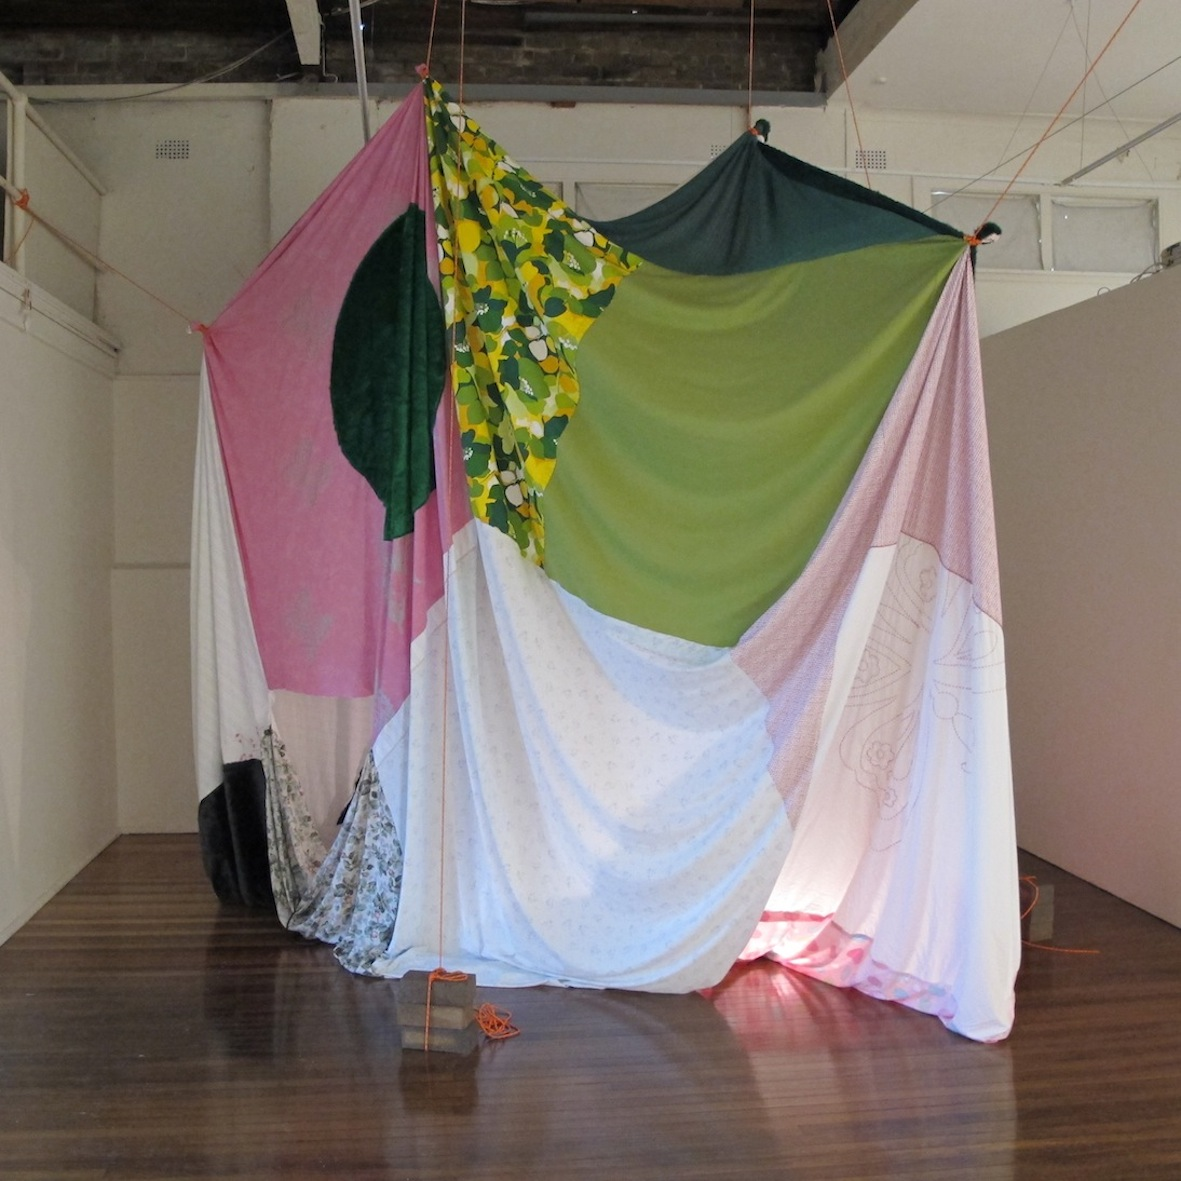 Memory Tent    2013  Bedsheets, doona covers, faux fur, crochet tablecloth, rope, bricks and lamp  300 x 300 x 300 cm